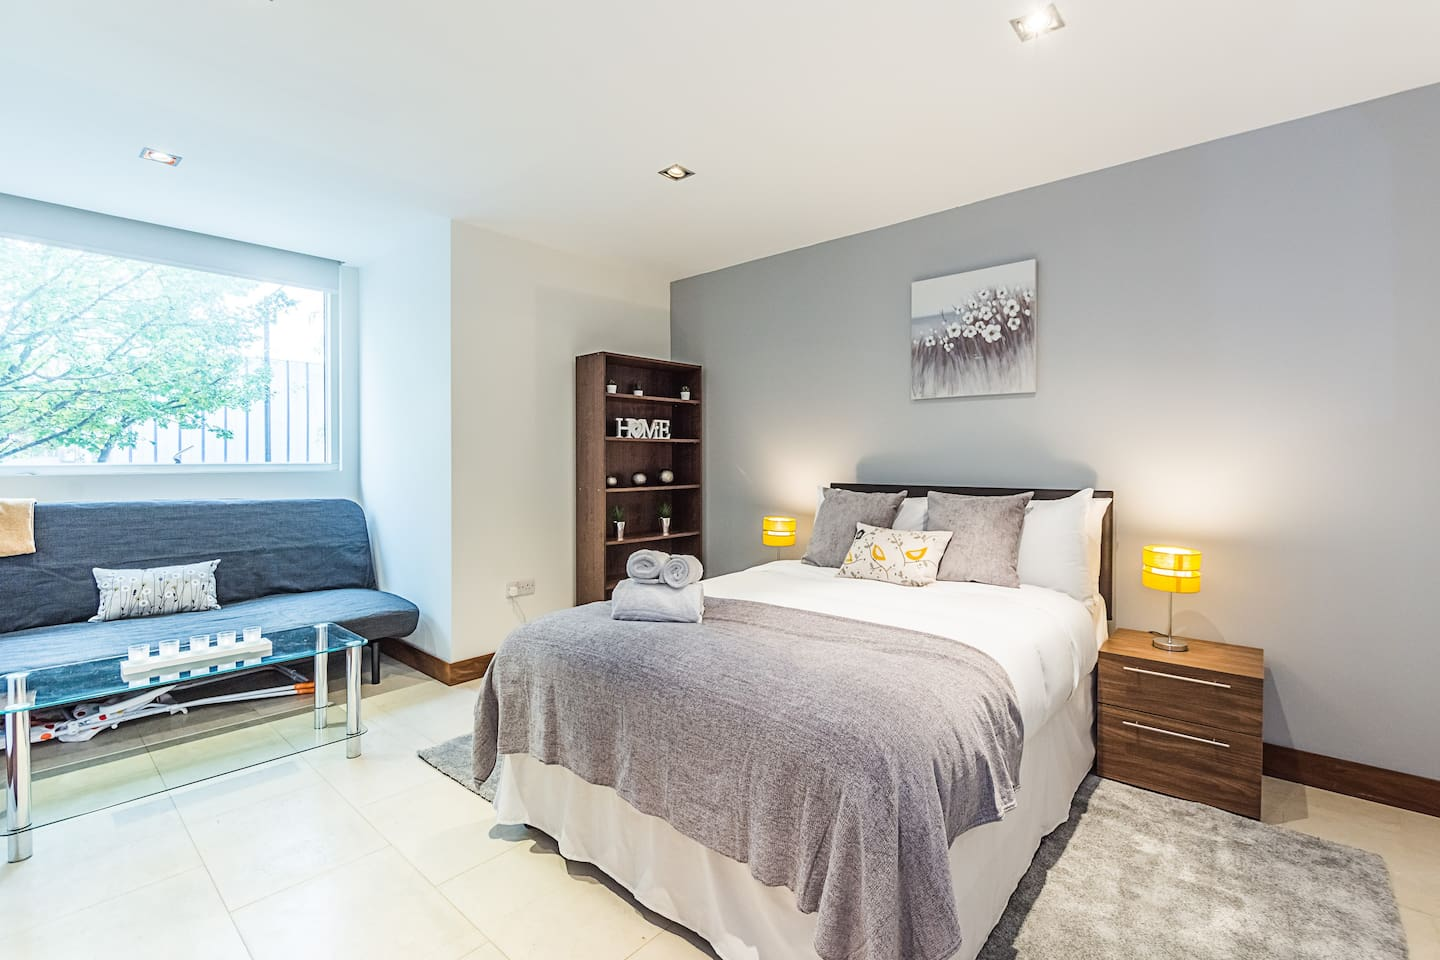 Your first large double suite features a double bed, dressed with hotel quality towels and linen for your stay. There are two wardrobes and a sofa and coffee table.